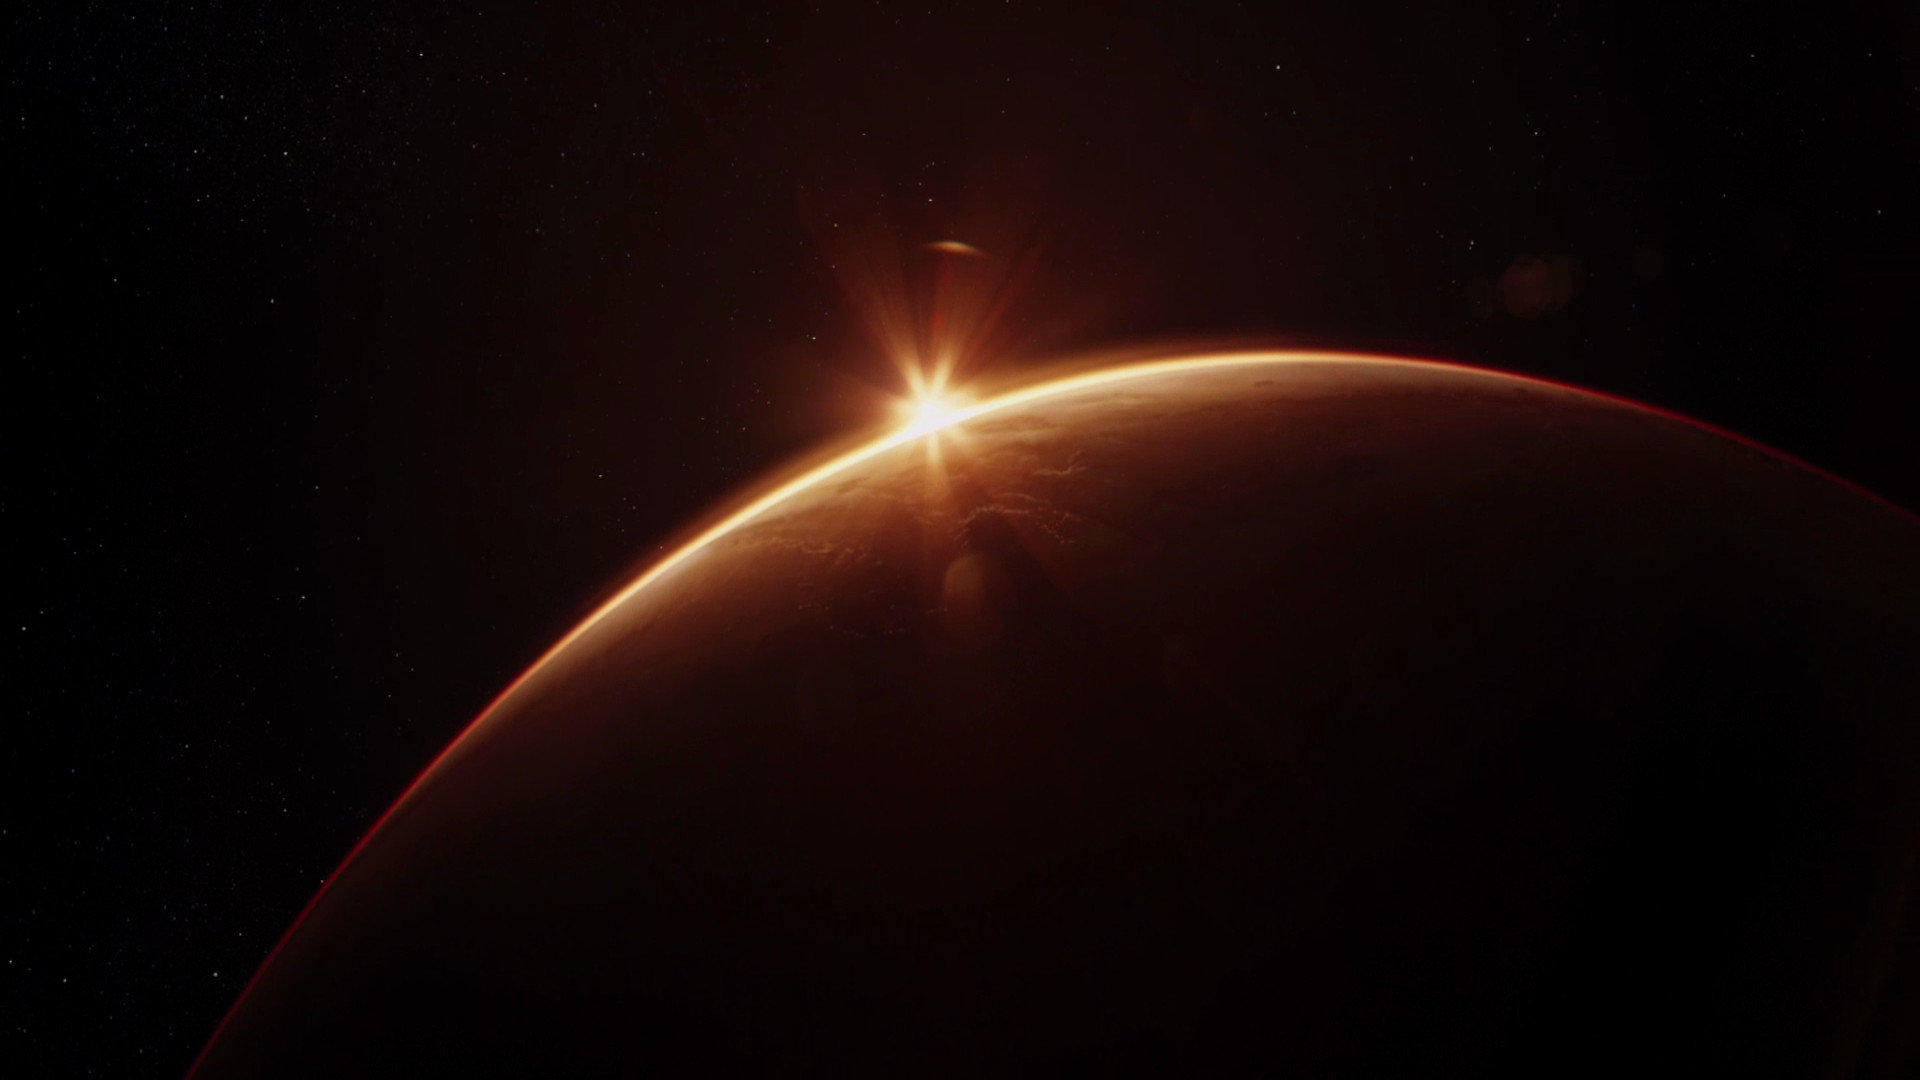 High Resolution The Martian Full Hd 1080p Wallpaper Id 165227 For